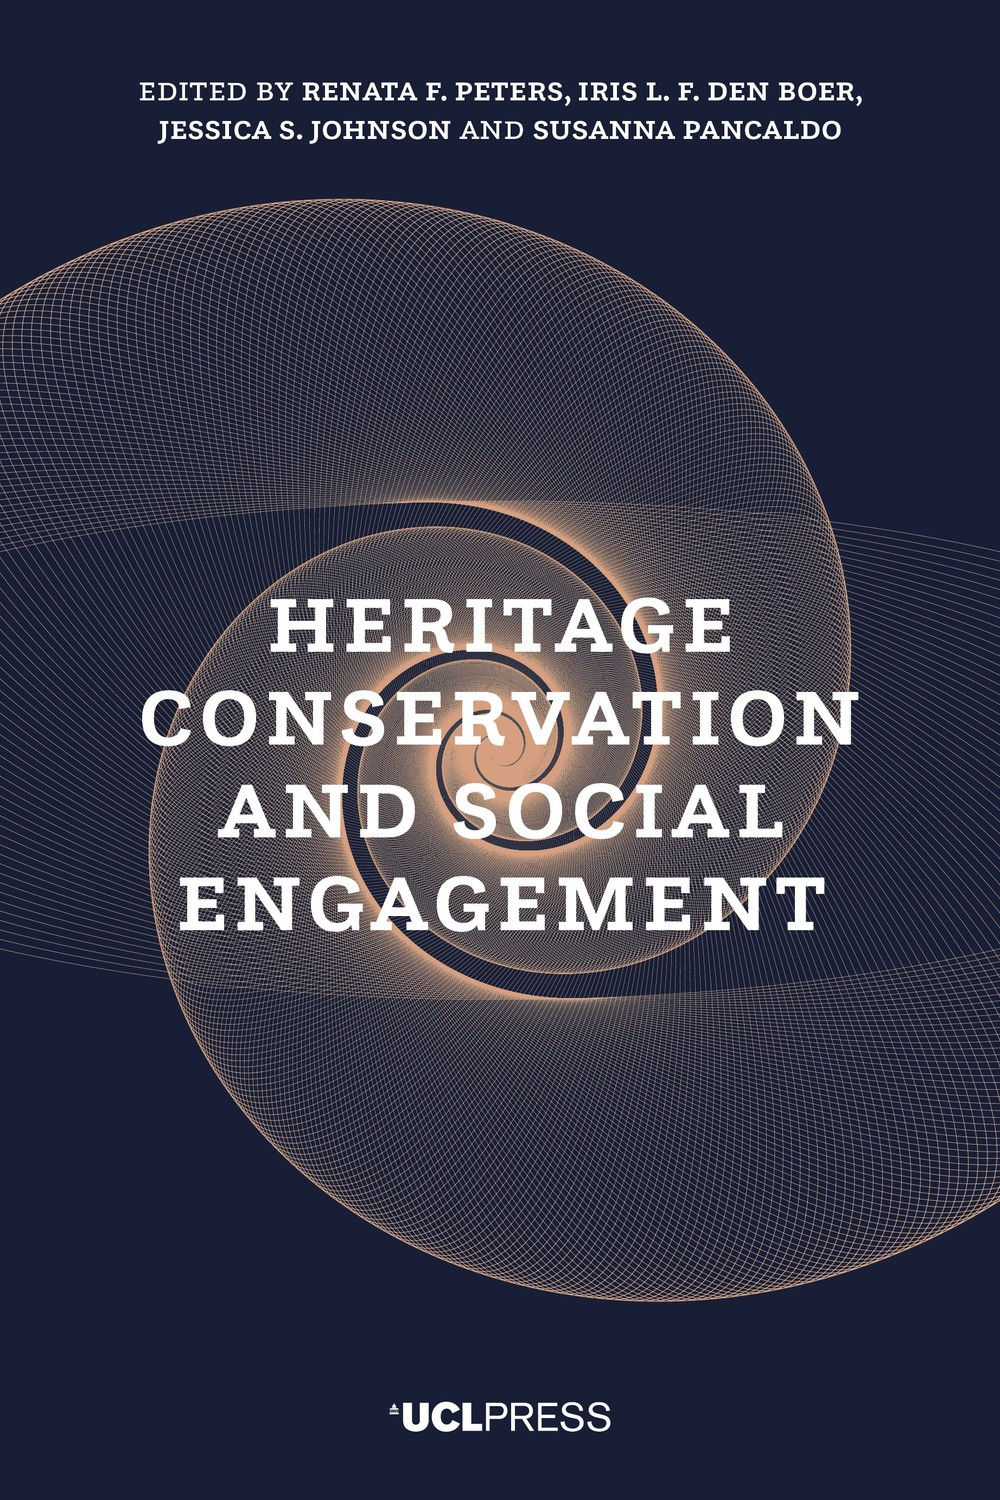 Heritage Conservation and Social Engagement